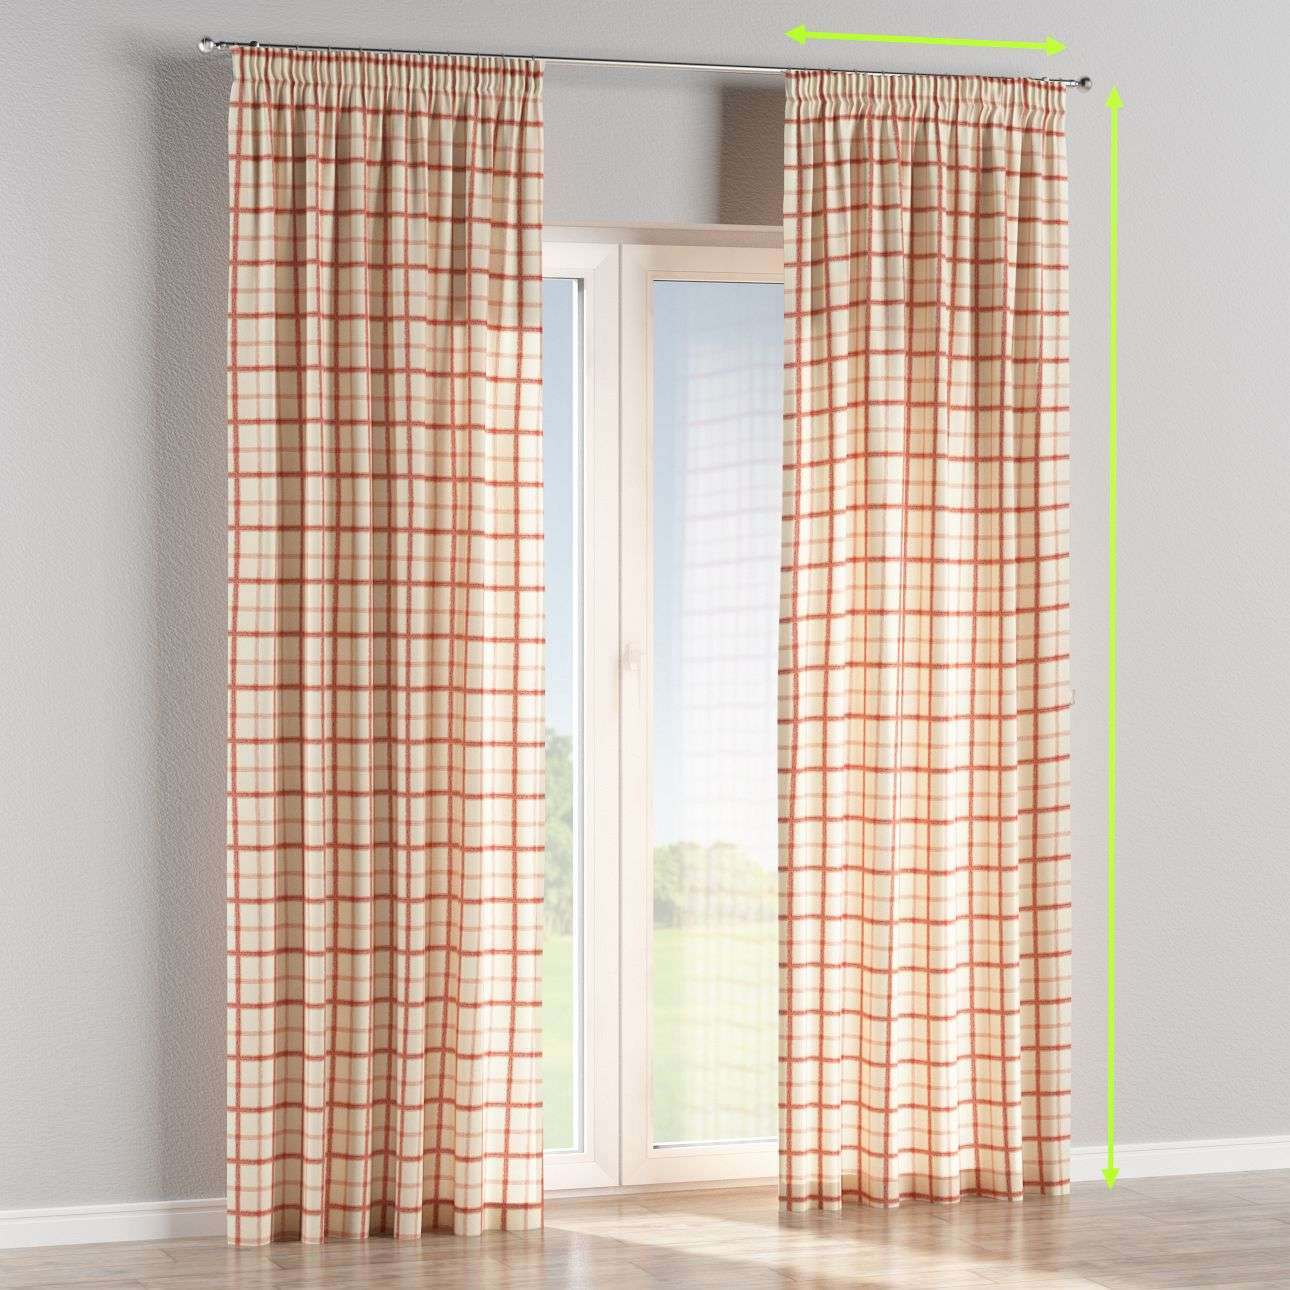 Pencil pleat lined curtains in collection Avinon, fabric: 131-15